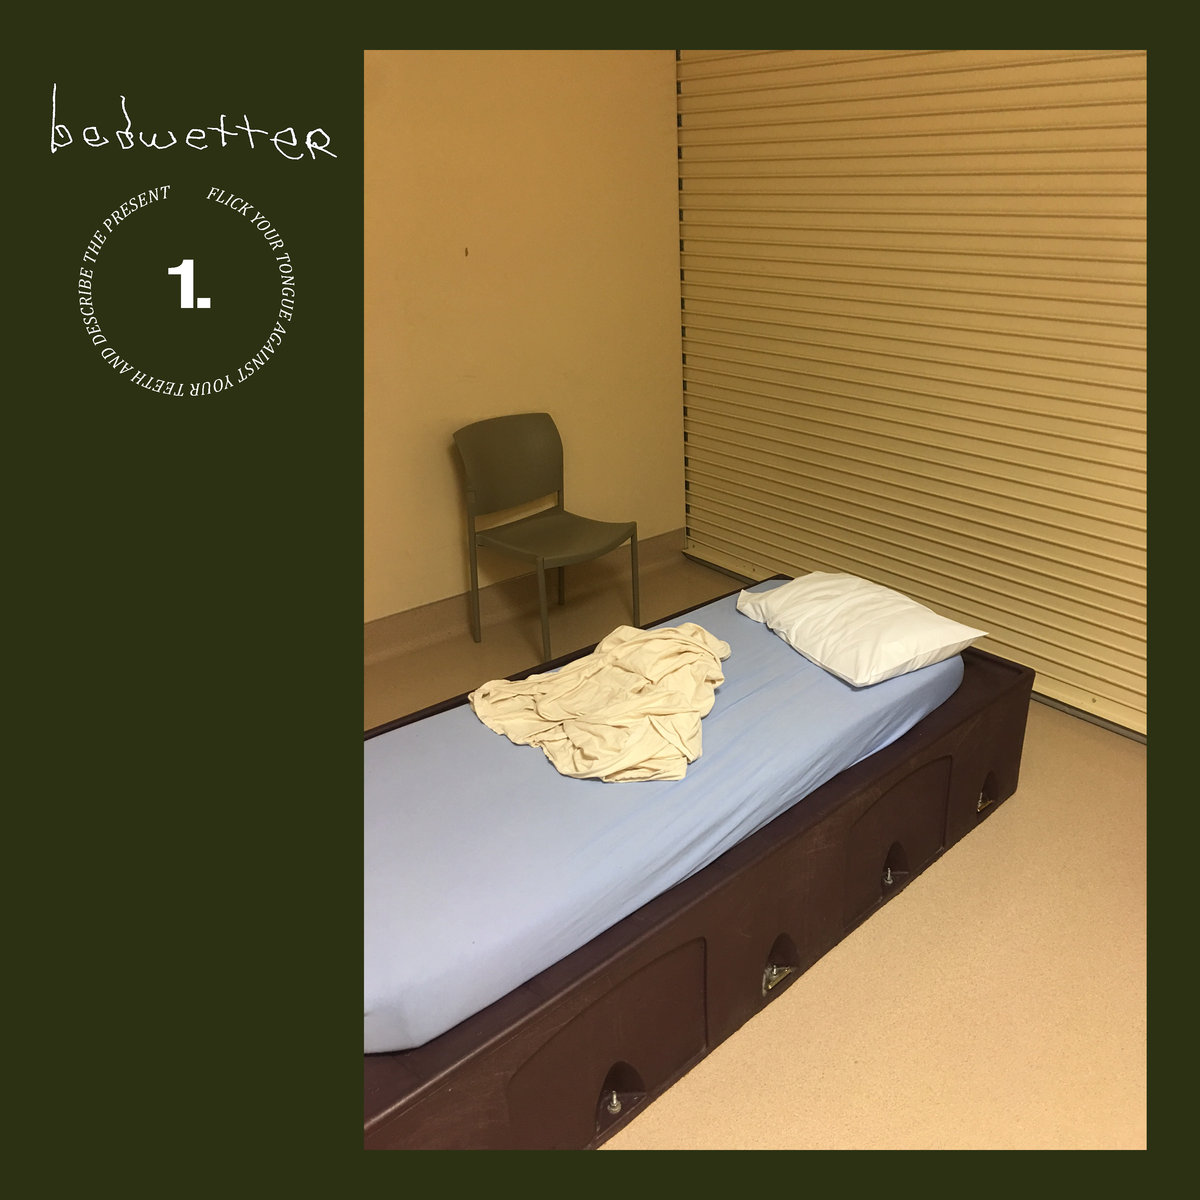 by bedwetter